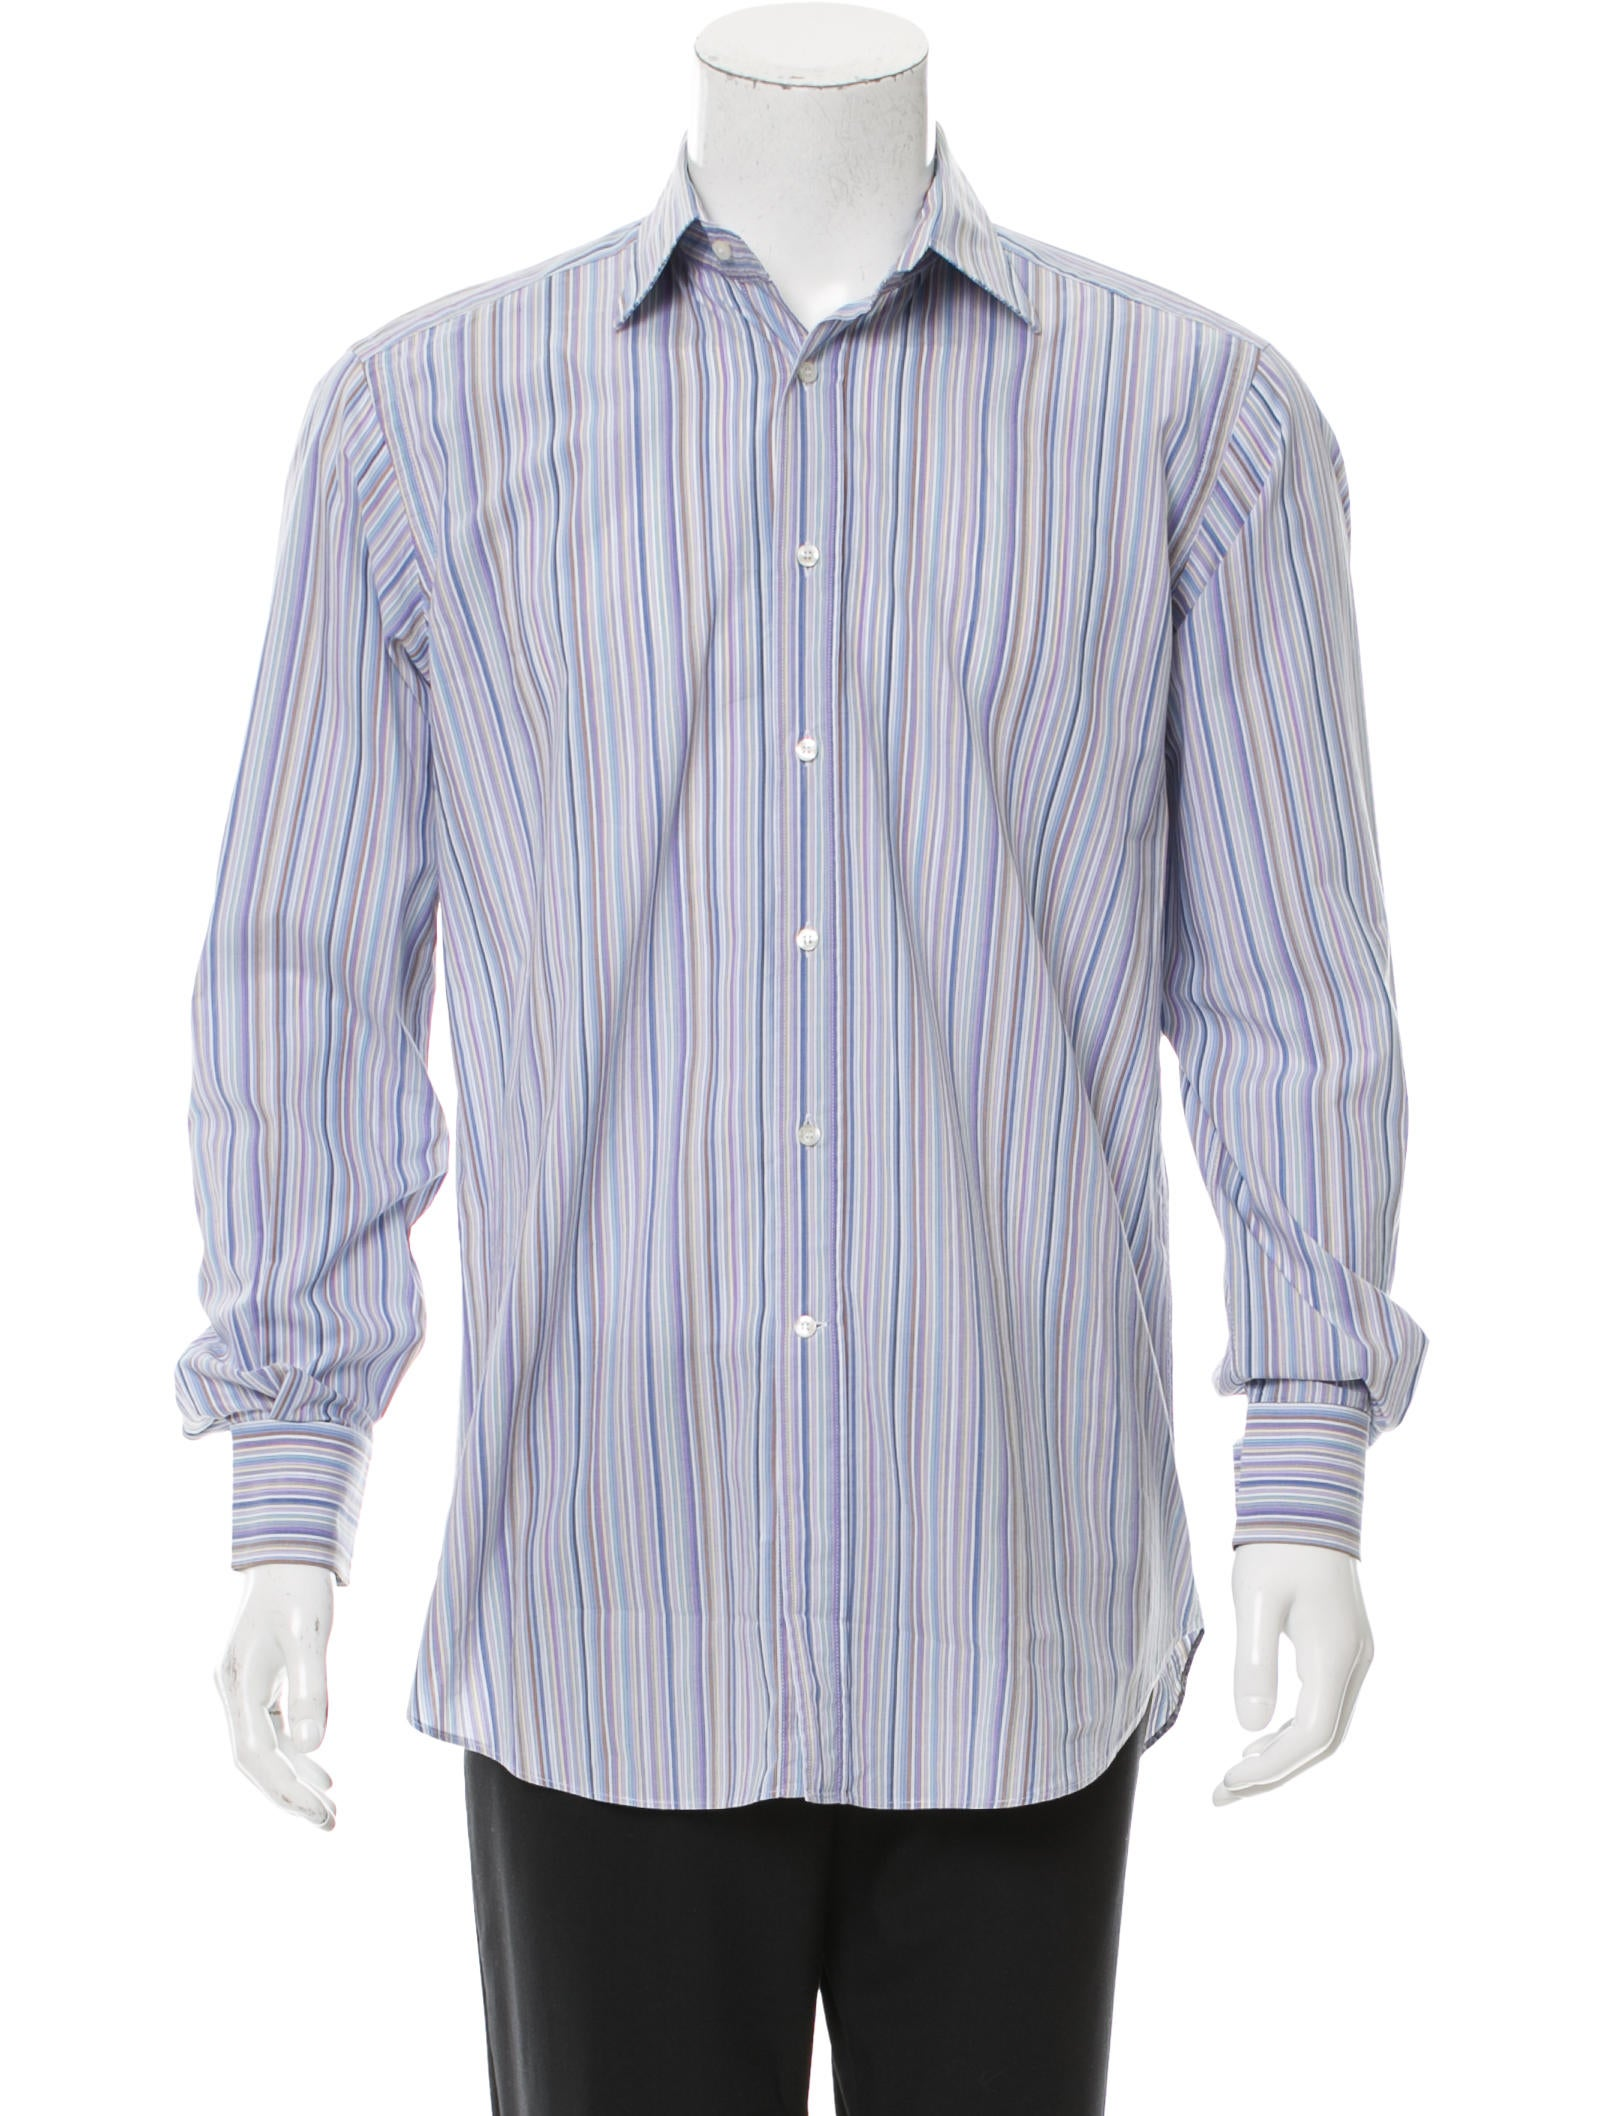 Etro striped button up shirt clothing etr50792 the for Striped button up shirt mens